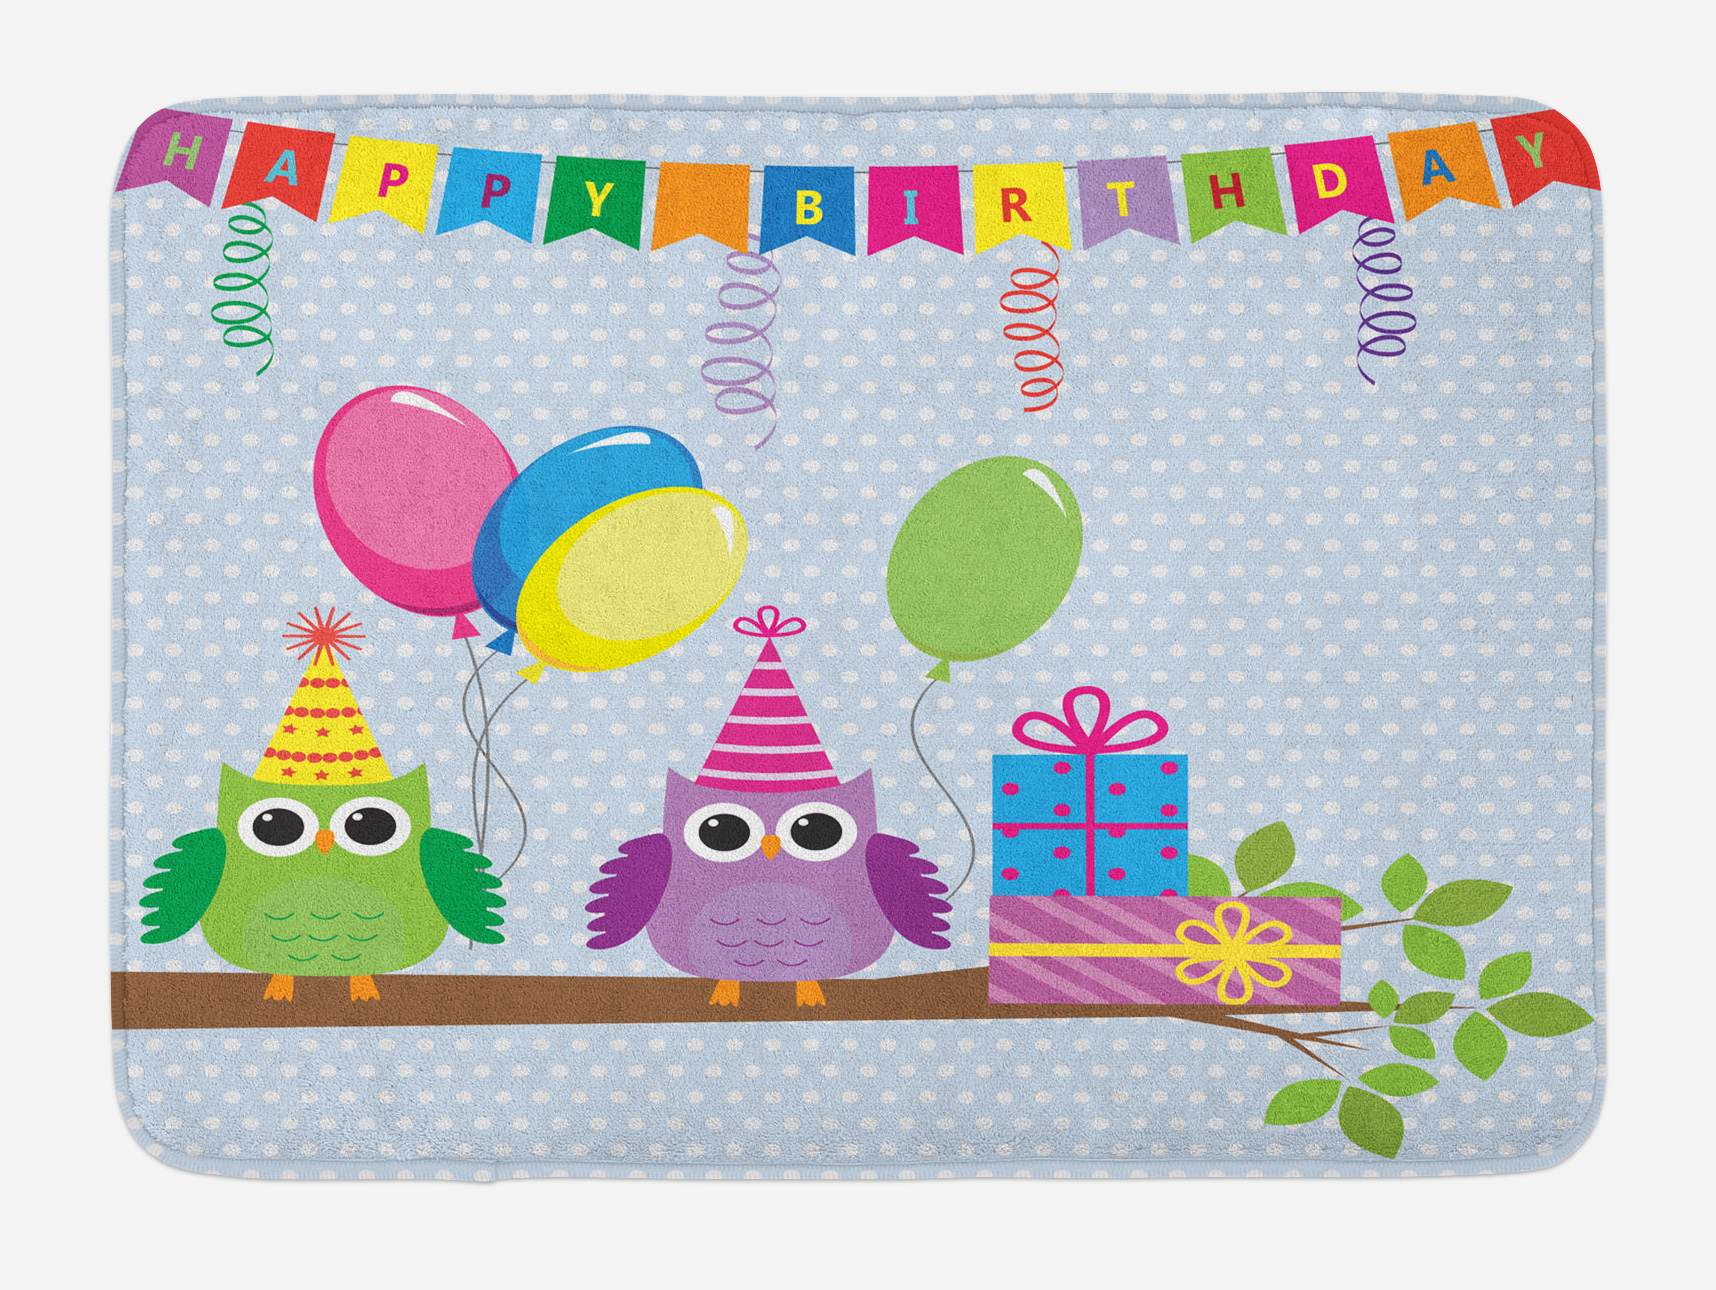 Kids Birthday Bath Mat, Cartoon Style Owls at a Party with Flags Boxes on a Polka Dotted... by 3decor llc